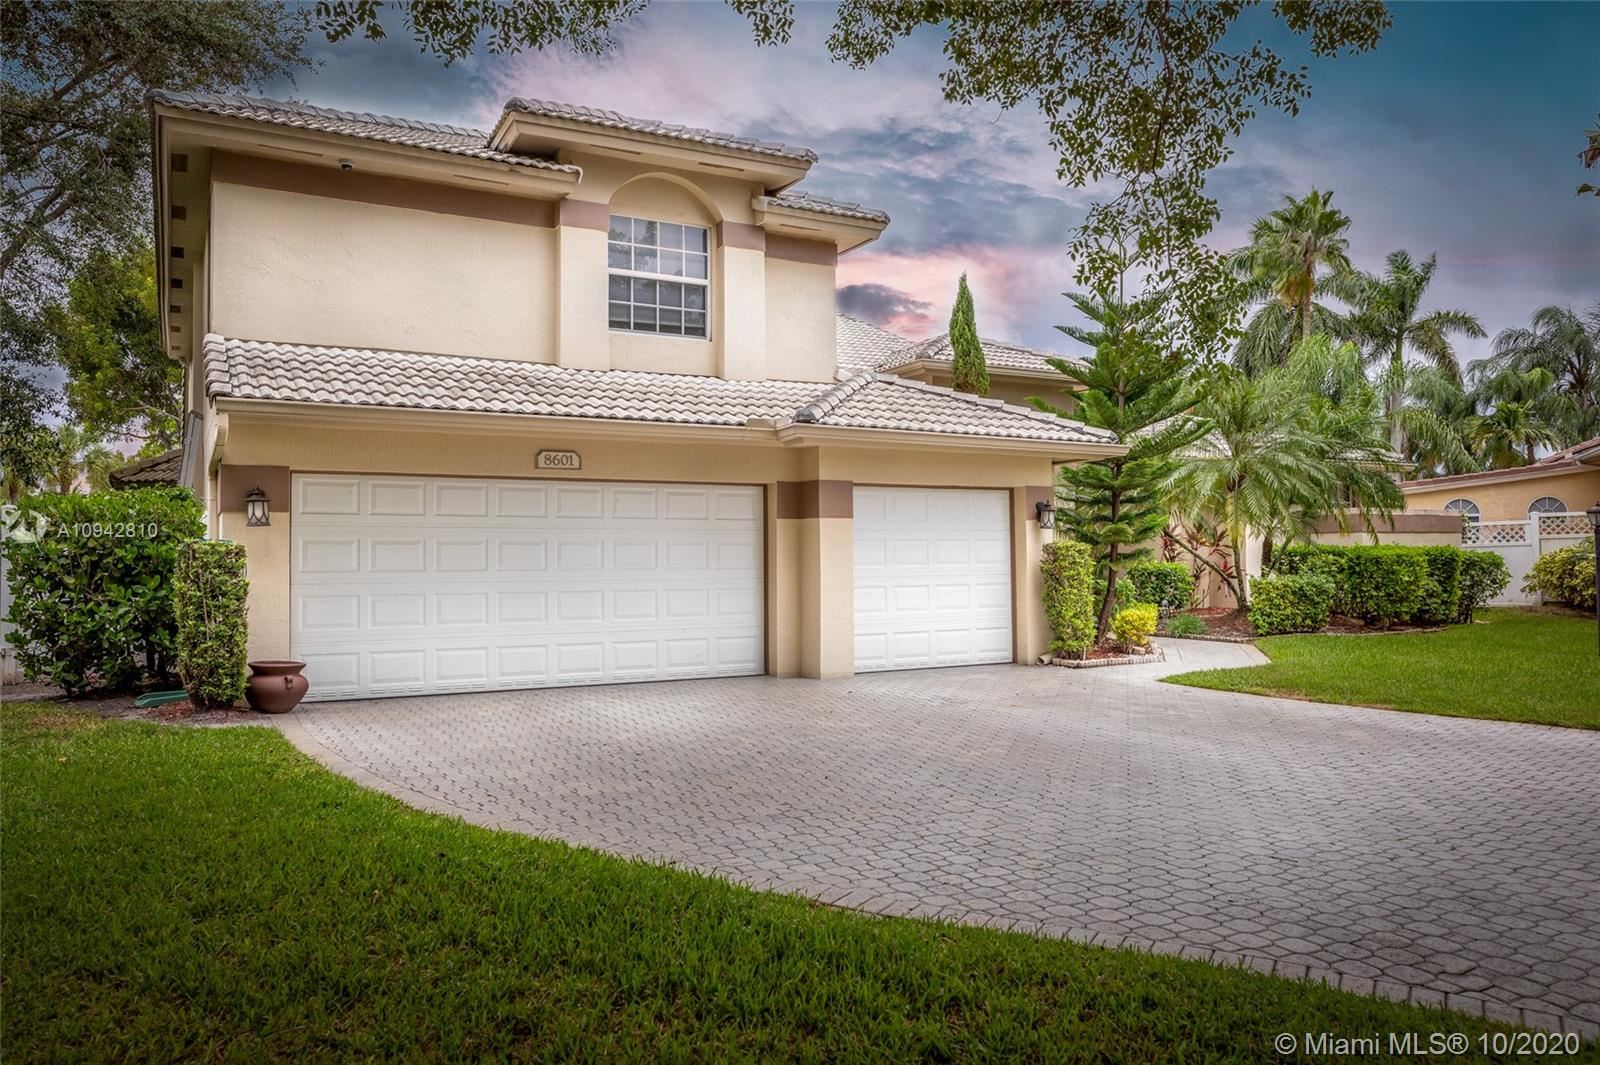 8601 NW 45th St, Coral Springs, FL 33065 - #: A10942810